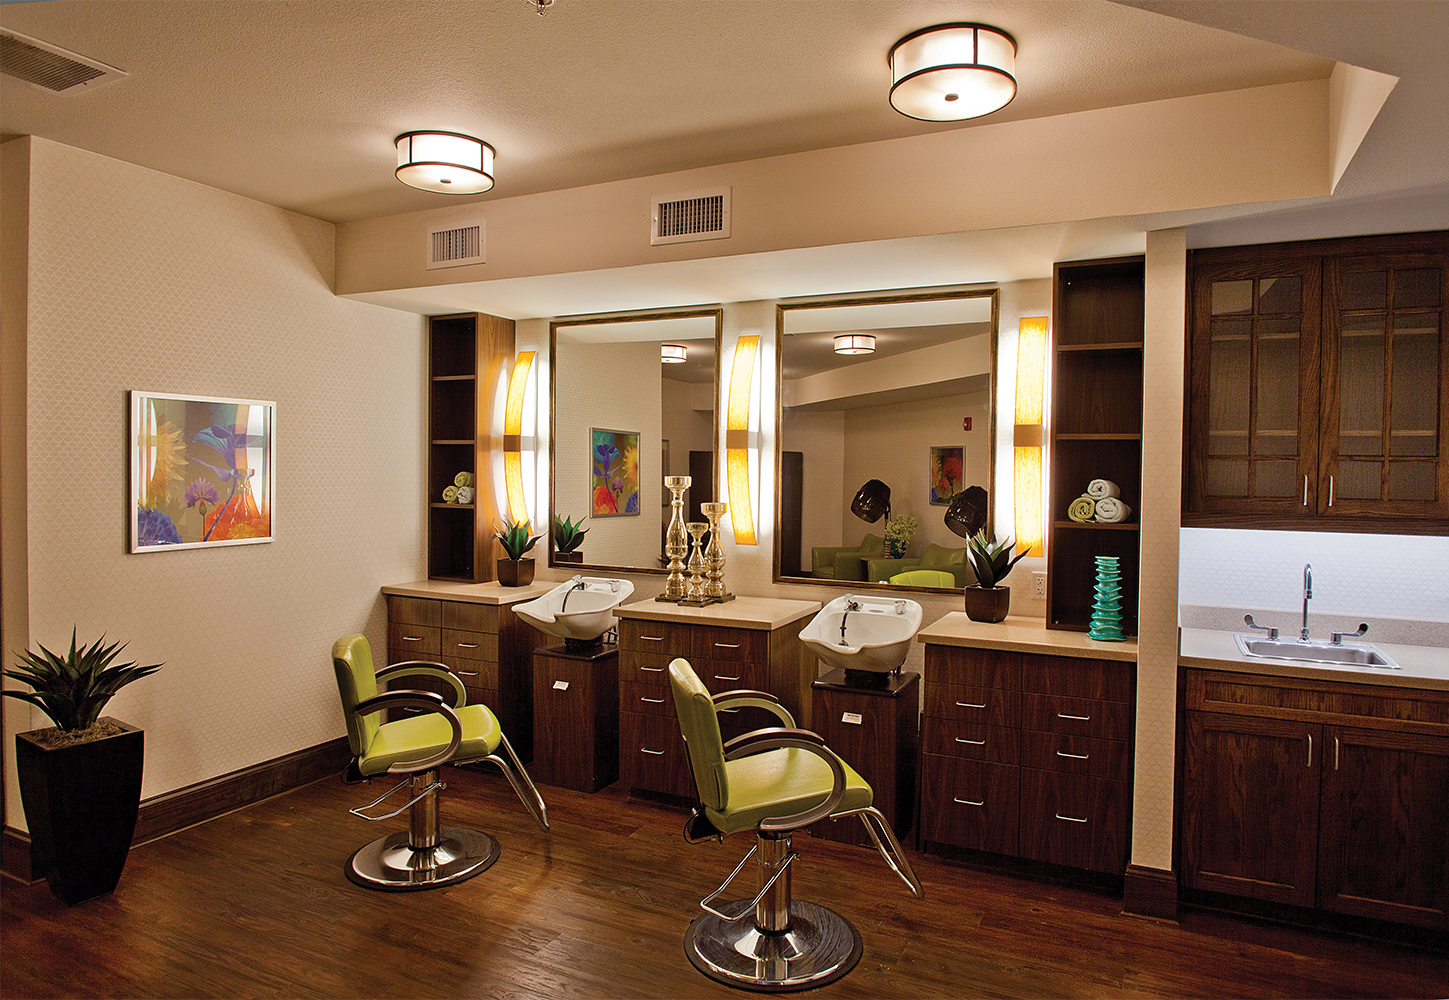 Bowe as a pleasing modern vanity light fixture, mounted vertically between salon mirrors, with Capitol ceiling luminaires.